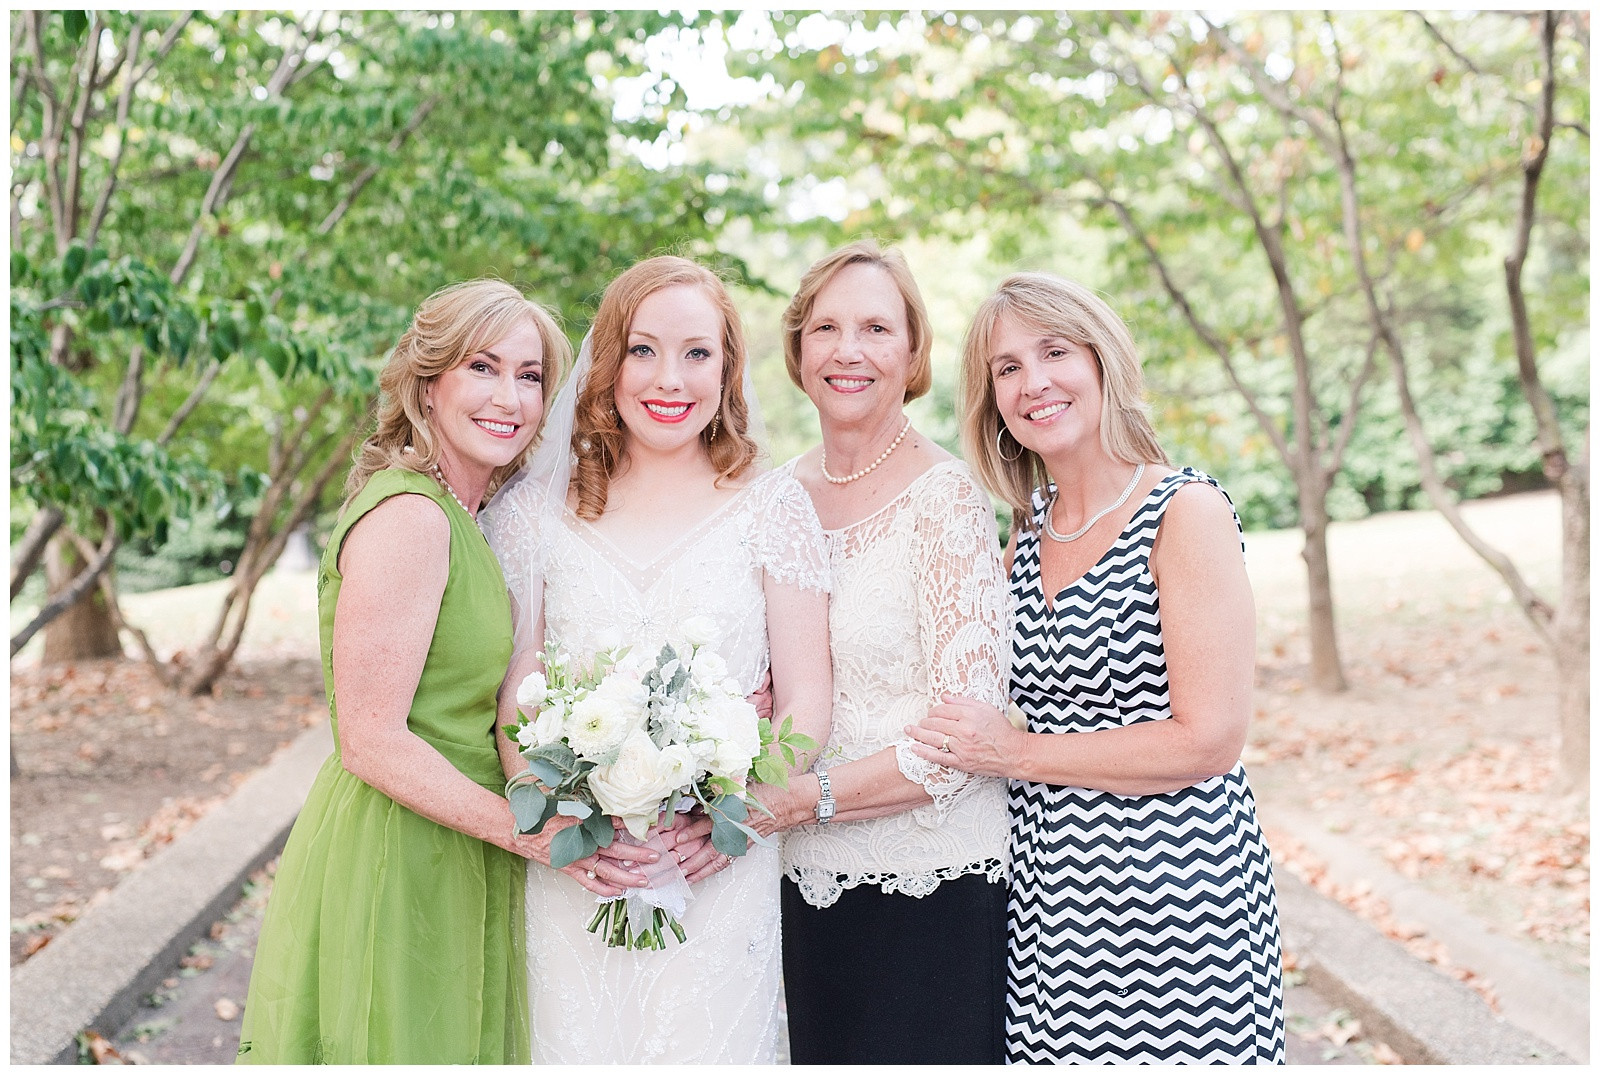 Creating Your Wedding Family Formal List